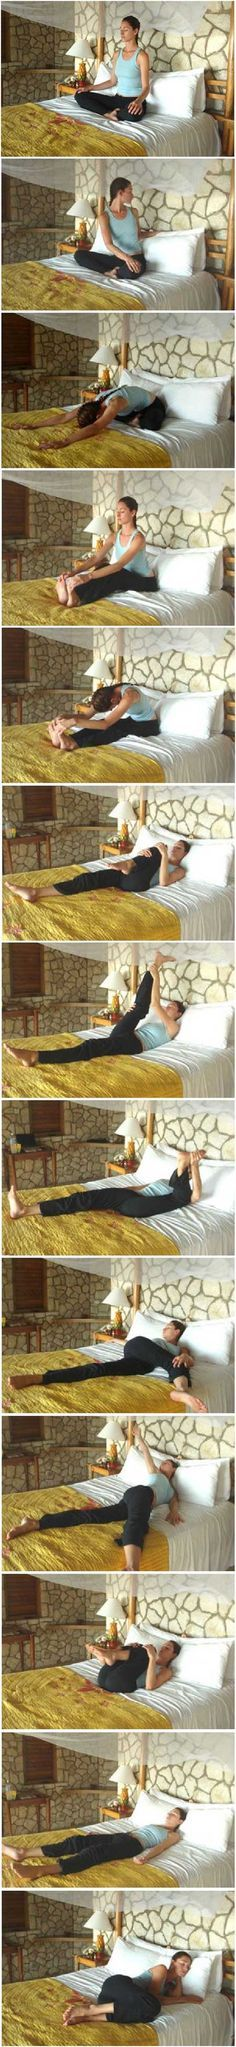 Yoga useful for improving insomnia during menopause